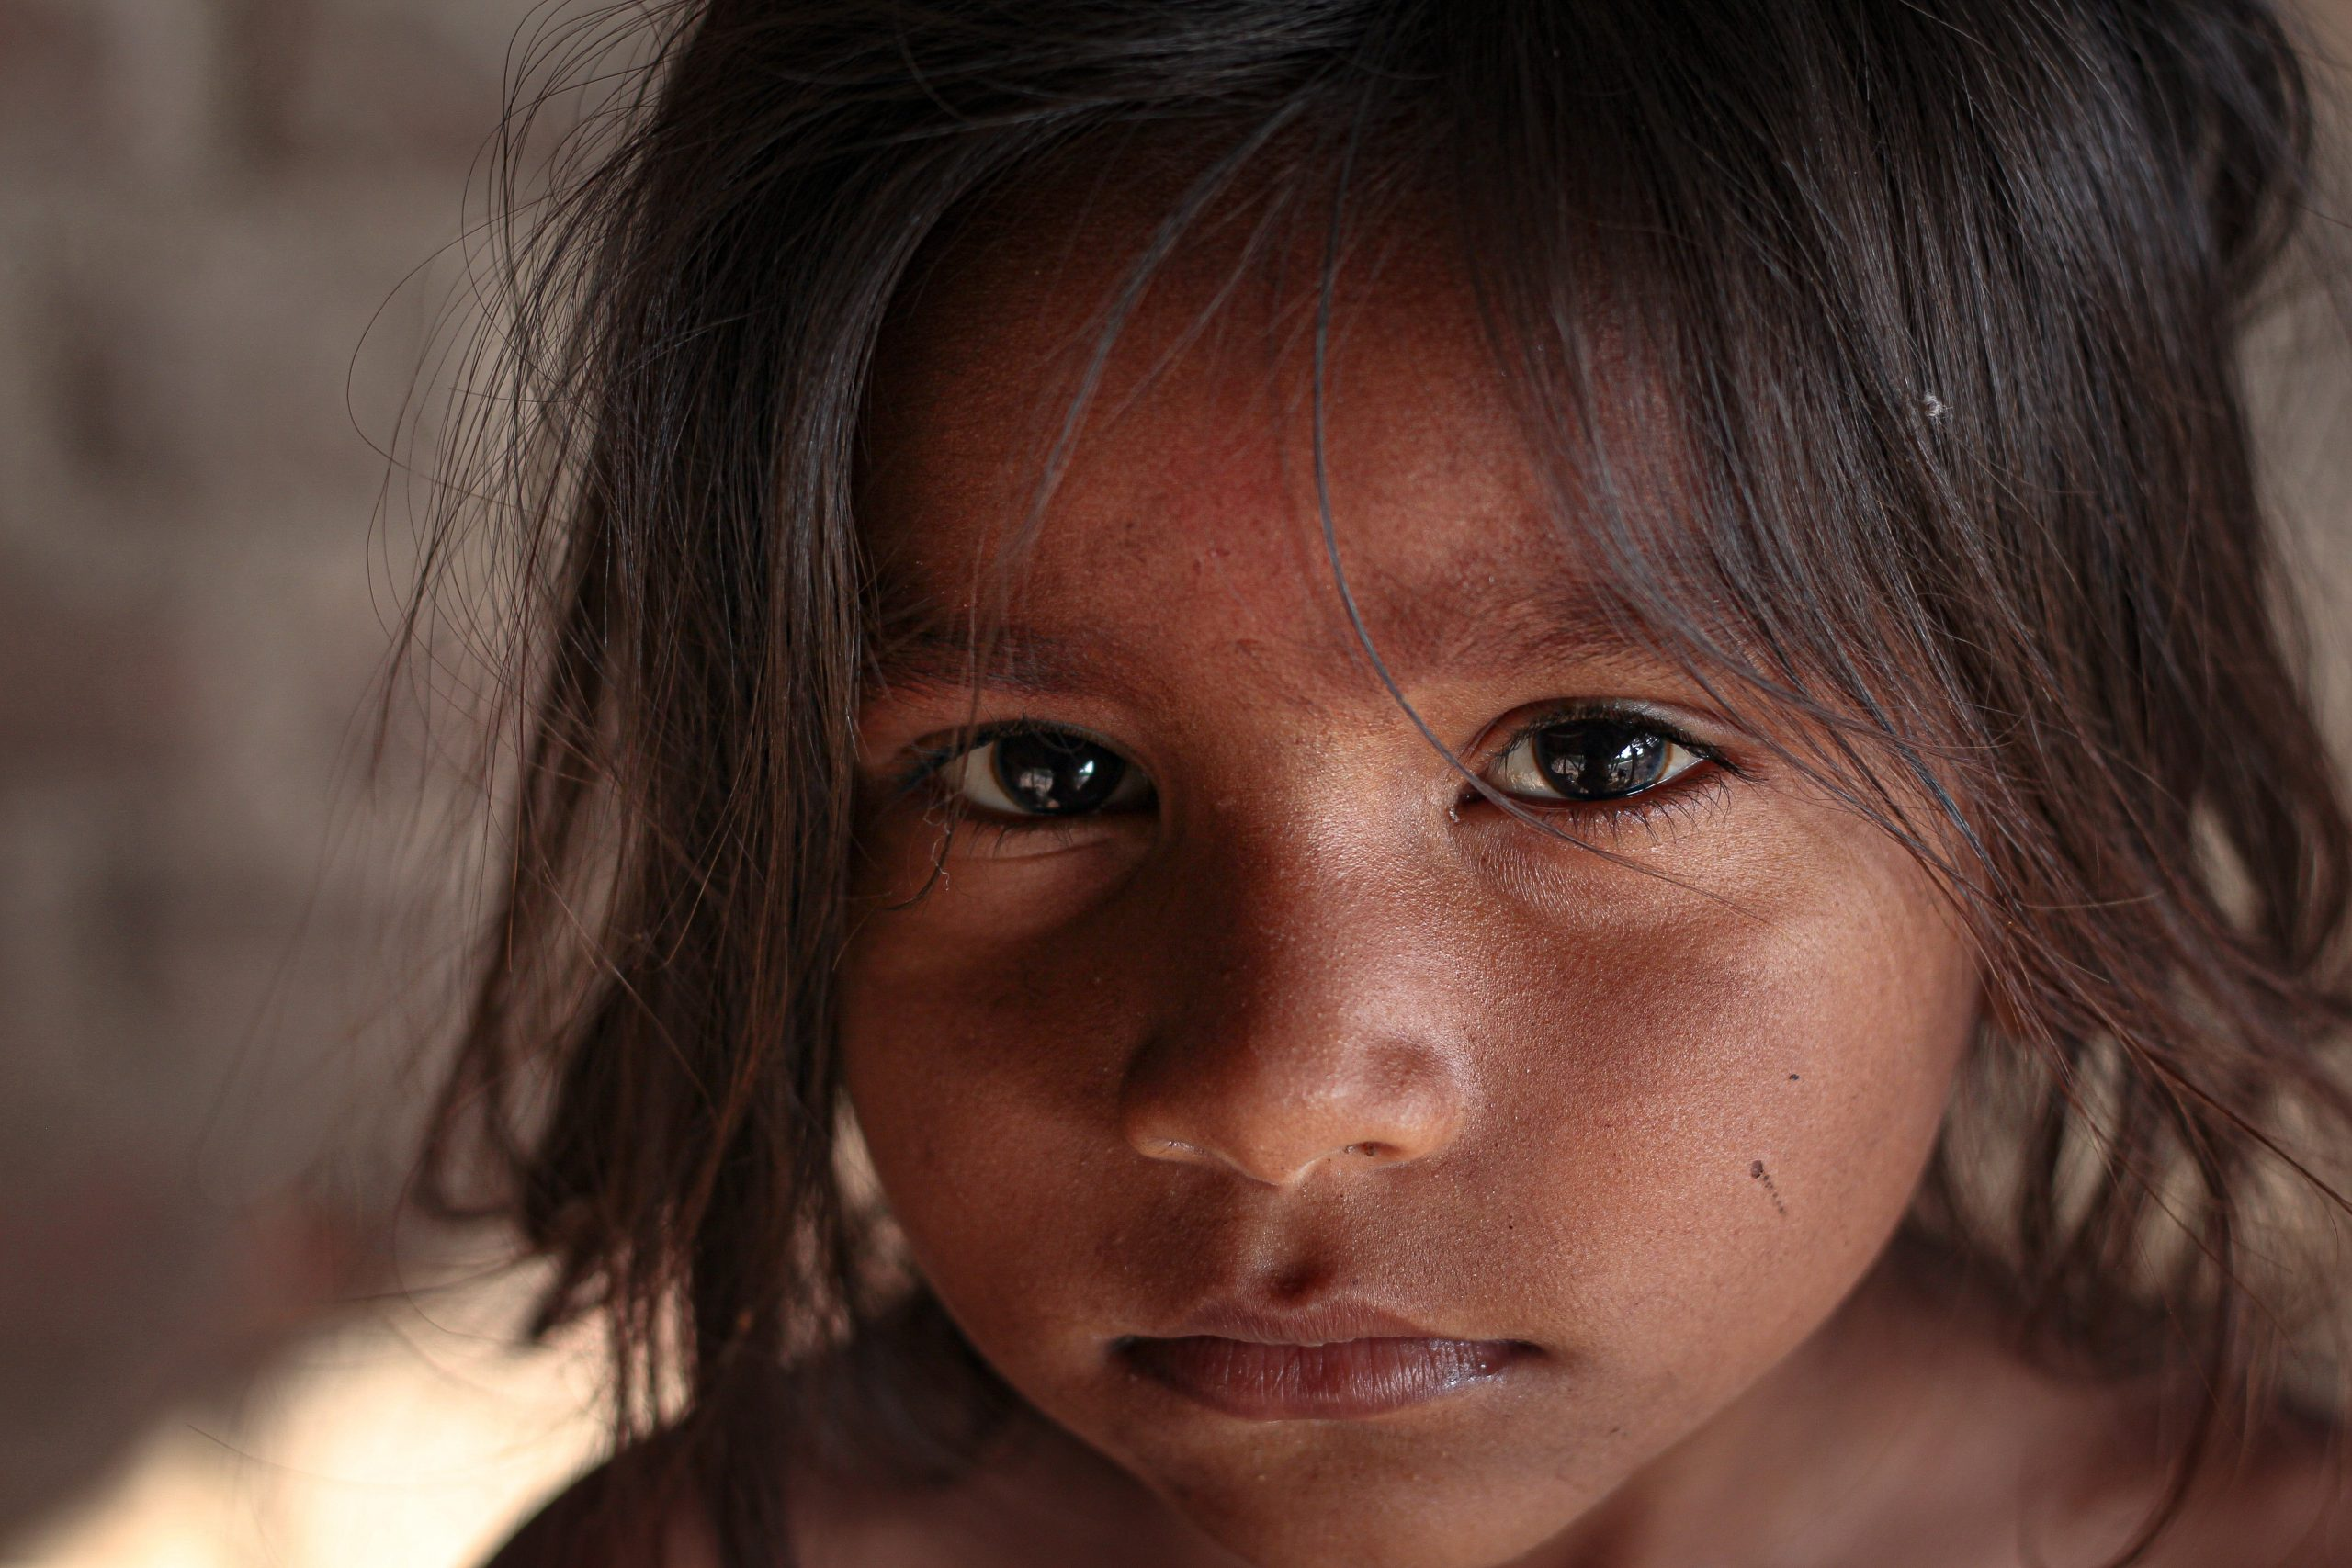 Sad Child, Help for Human Trafficking, Save the Children, The Prism Project